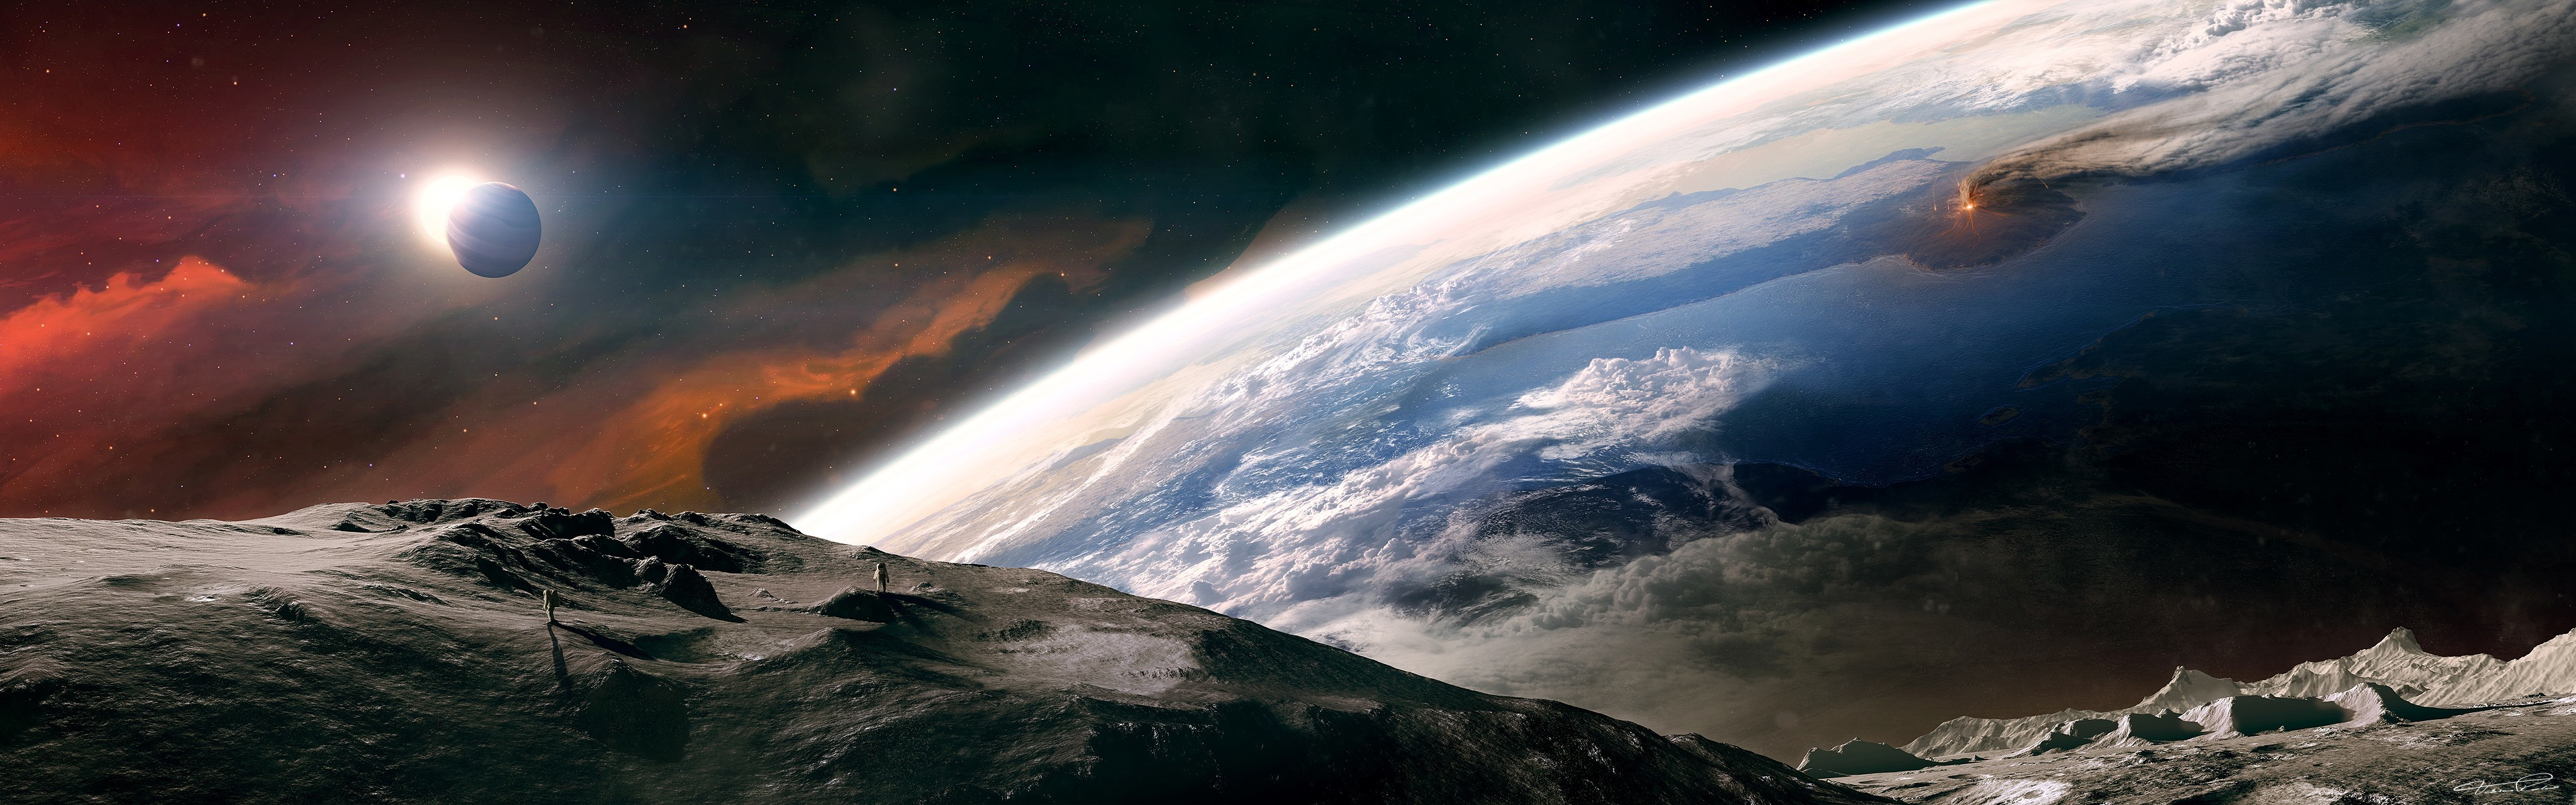 3840x1200 Outer space moon earth tranquility dual monitor wallpaper   3840x1200   9381   WallpaperUP